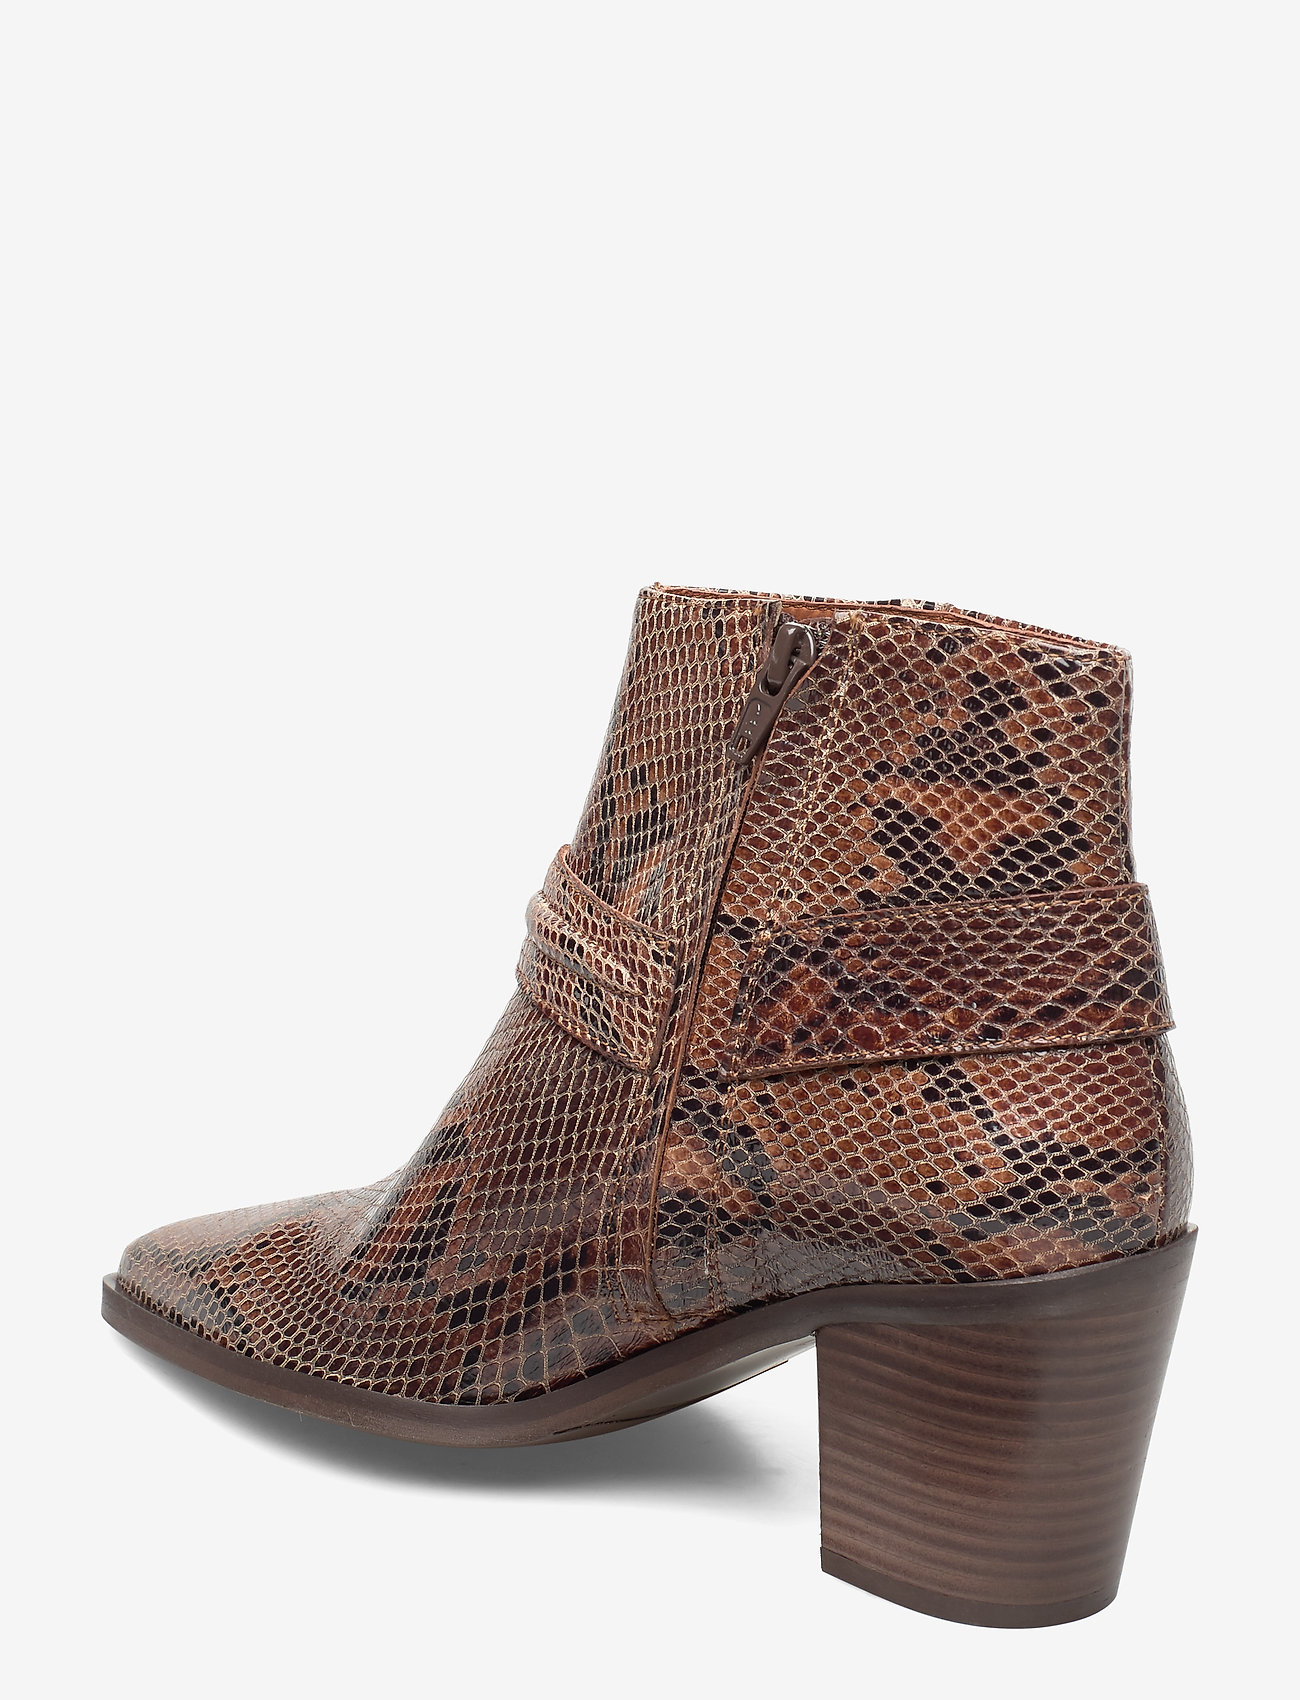 Booties 3722 (Brown Yilan Snake/gold 332) - Billi Bi